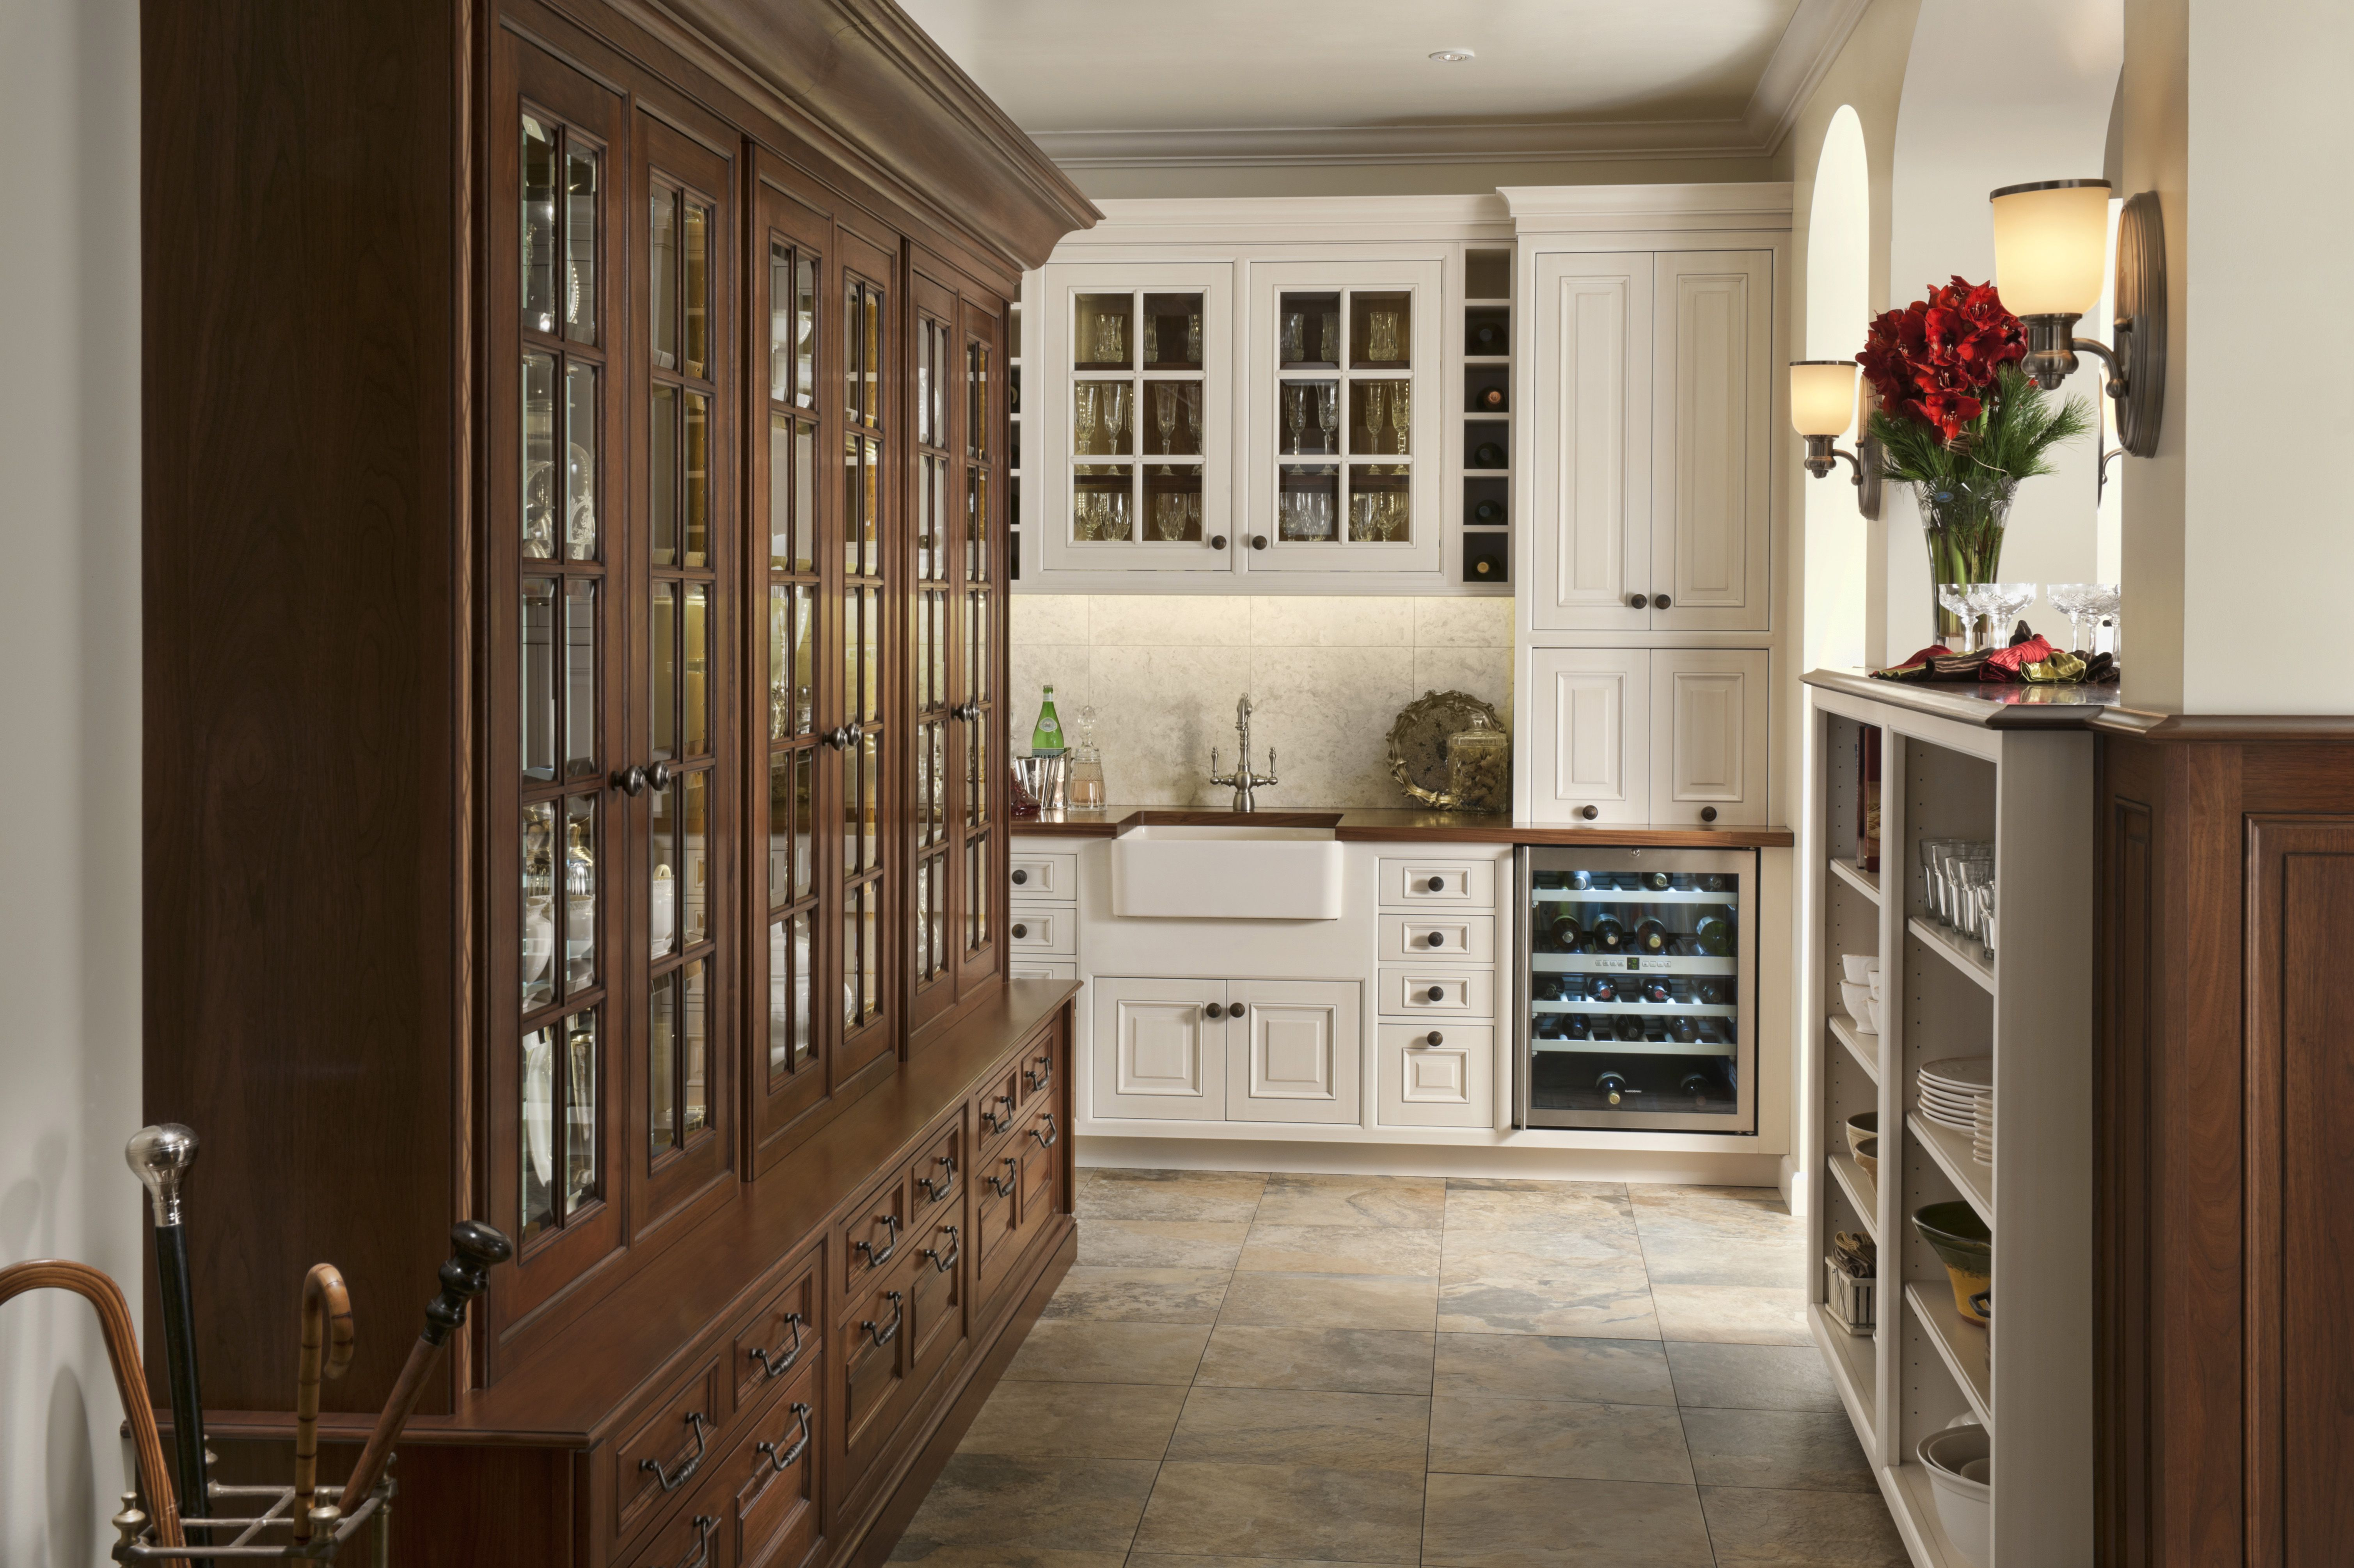 Wood Mode Wet Bar Shown In Vintage Nordic White Finish On Maple